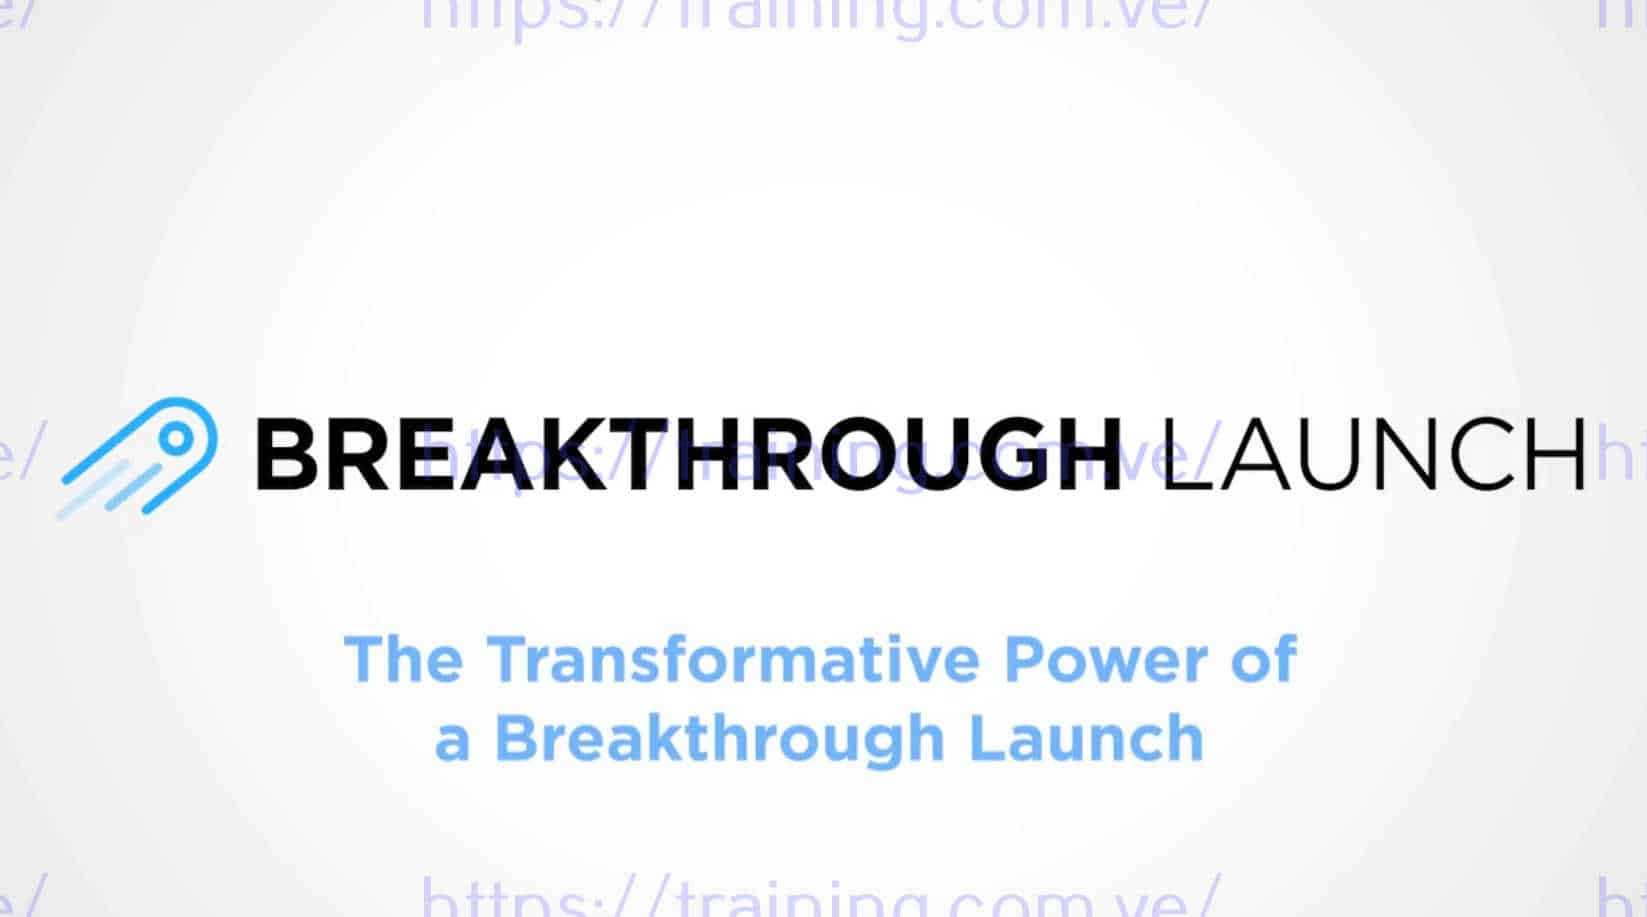 Breakthrough Launch 2019 by Ramit Sethi Get